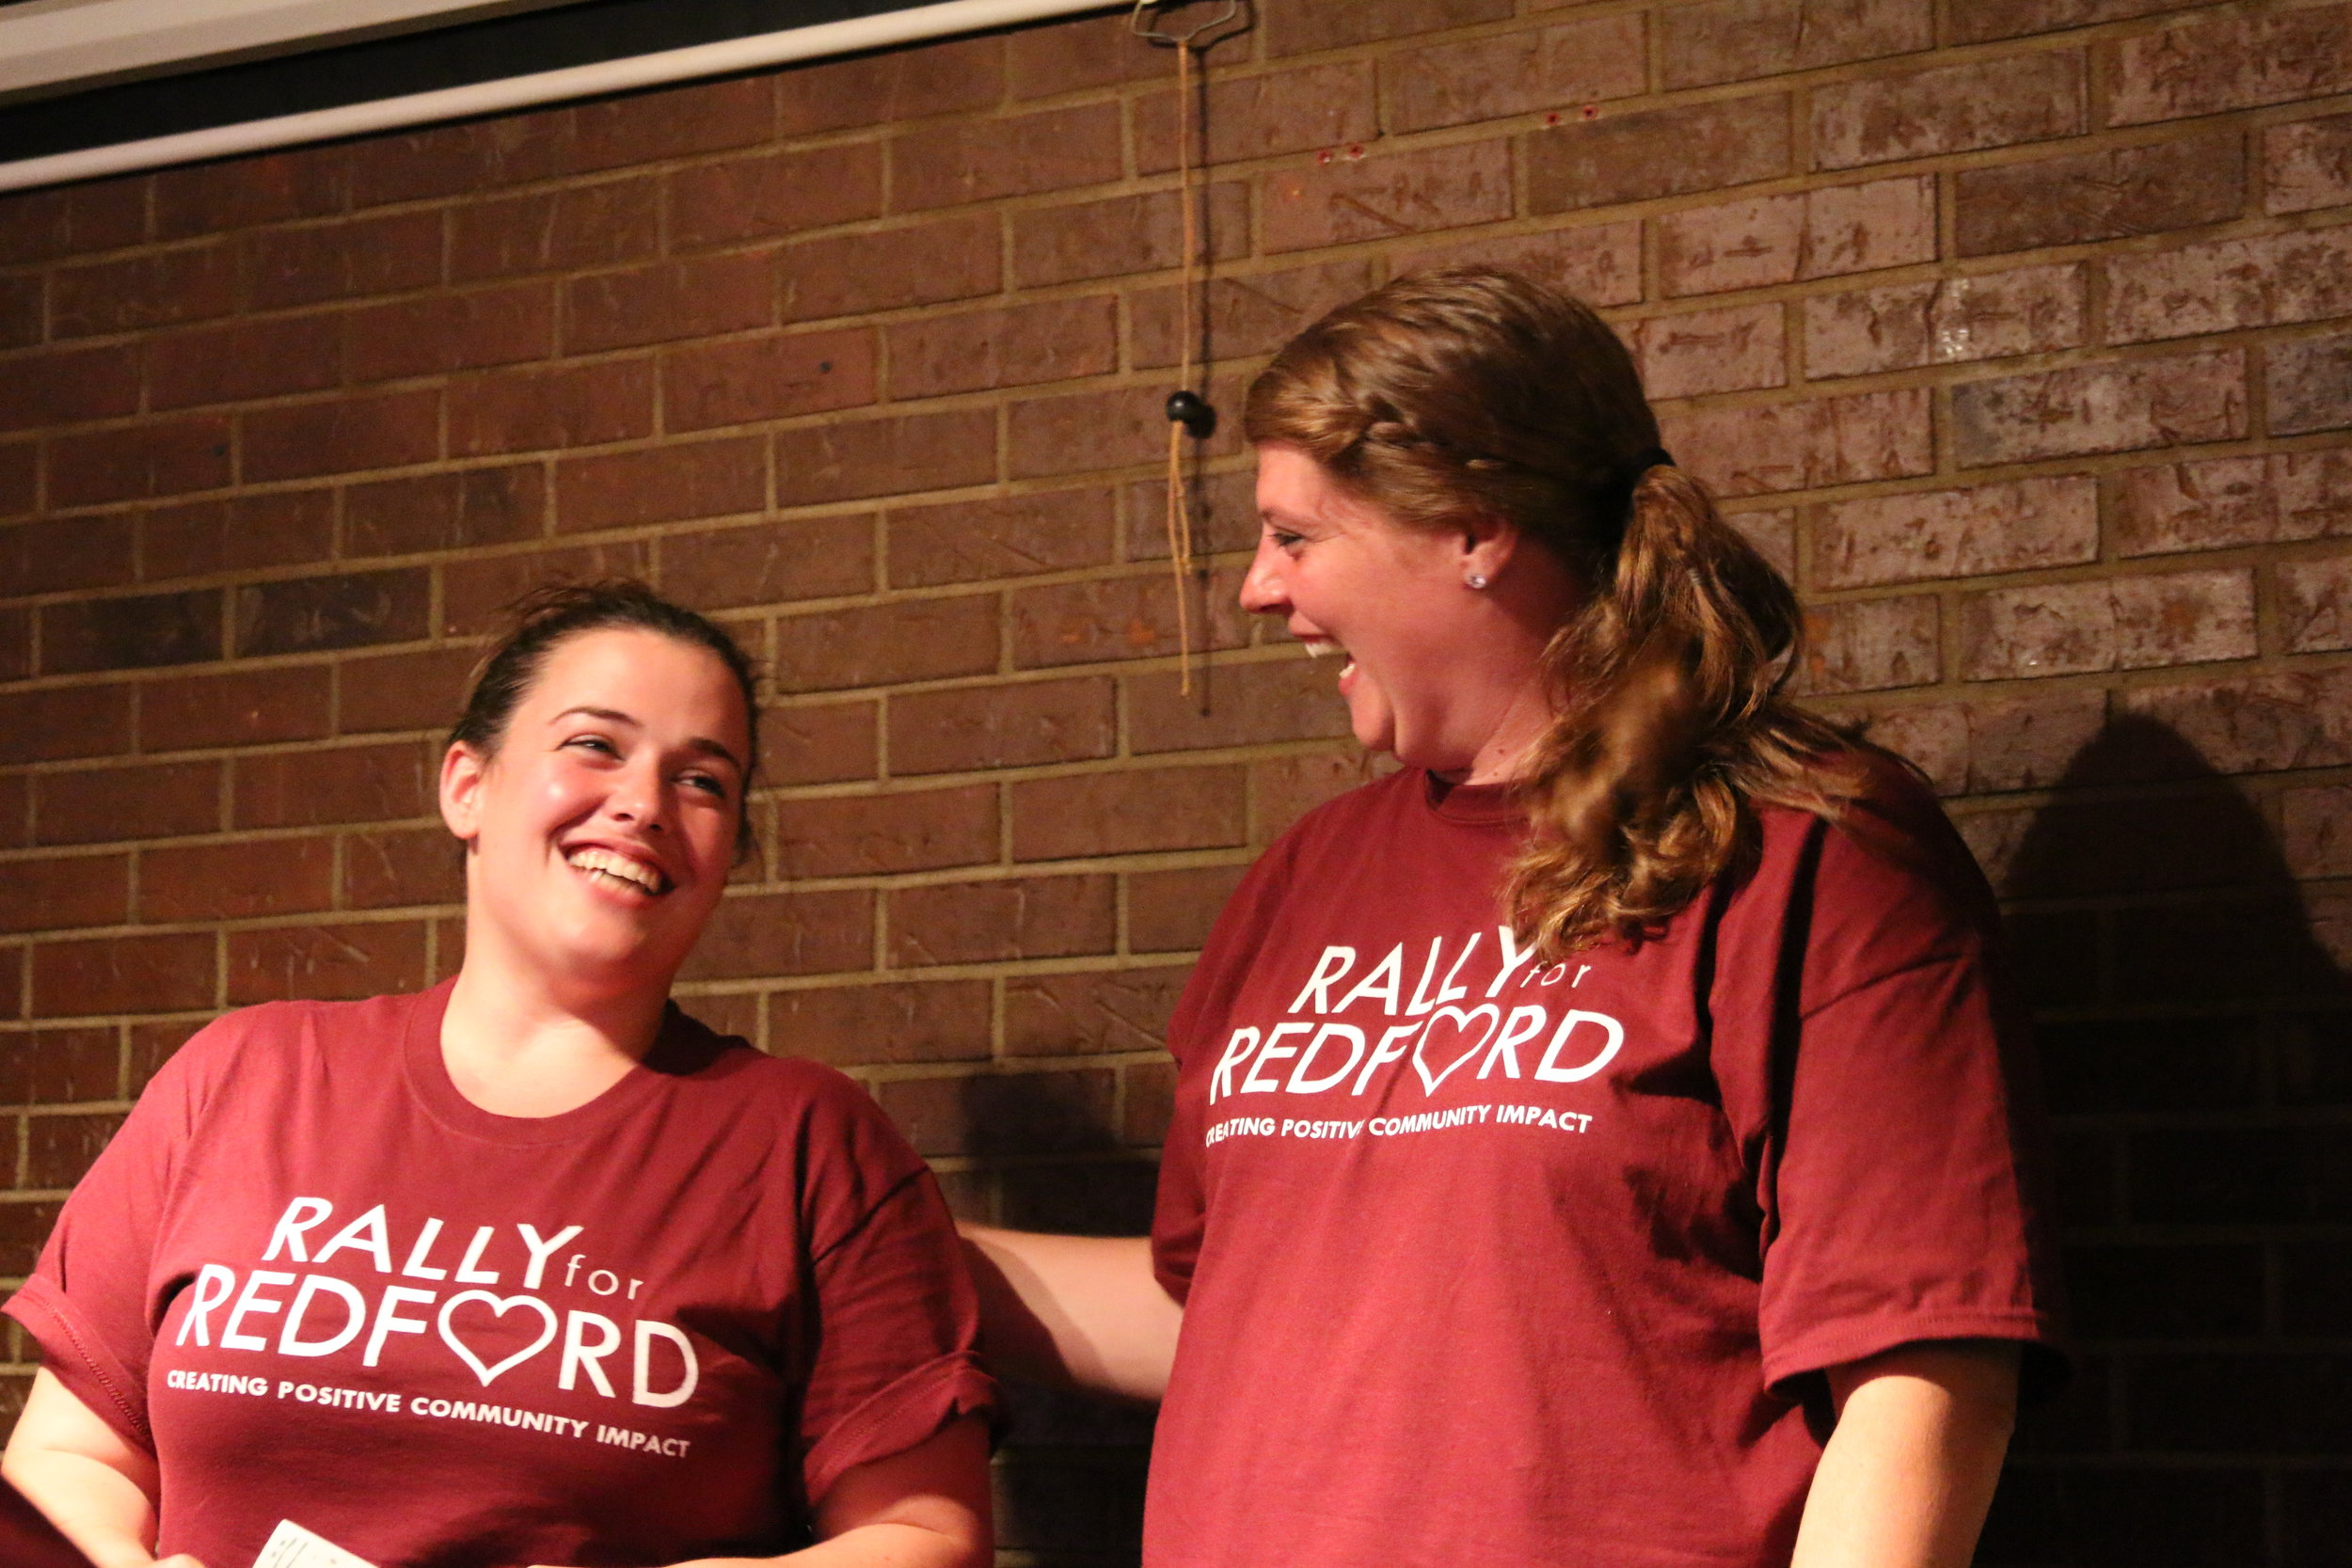 In this photo from the first rally in 2016, Susan Dials (left) and Jen Aaro (right) hear for the first time that word of their kindness rally had spread to other cities, states and countires in just a few hours.